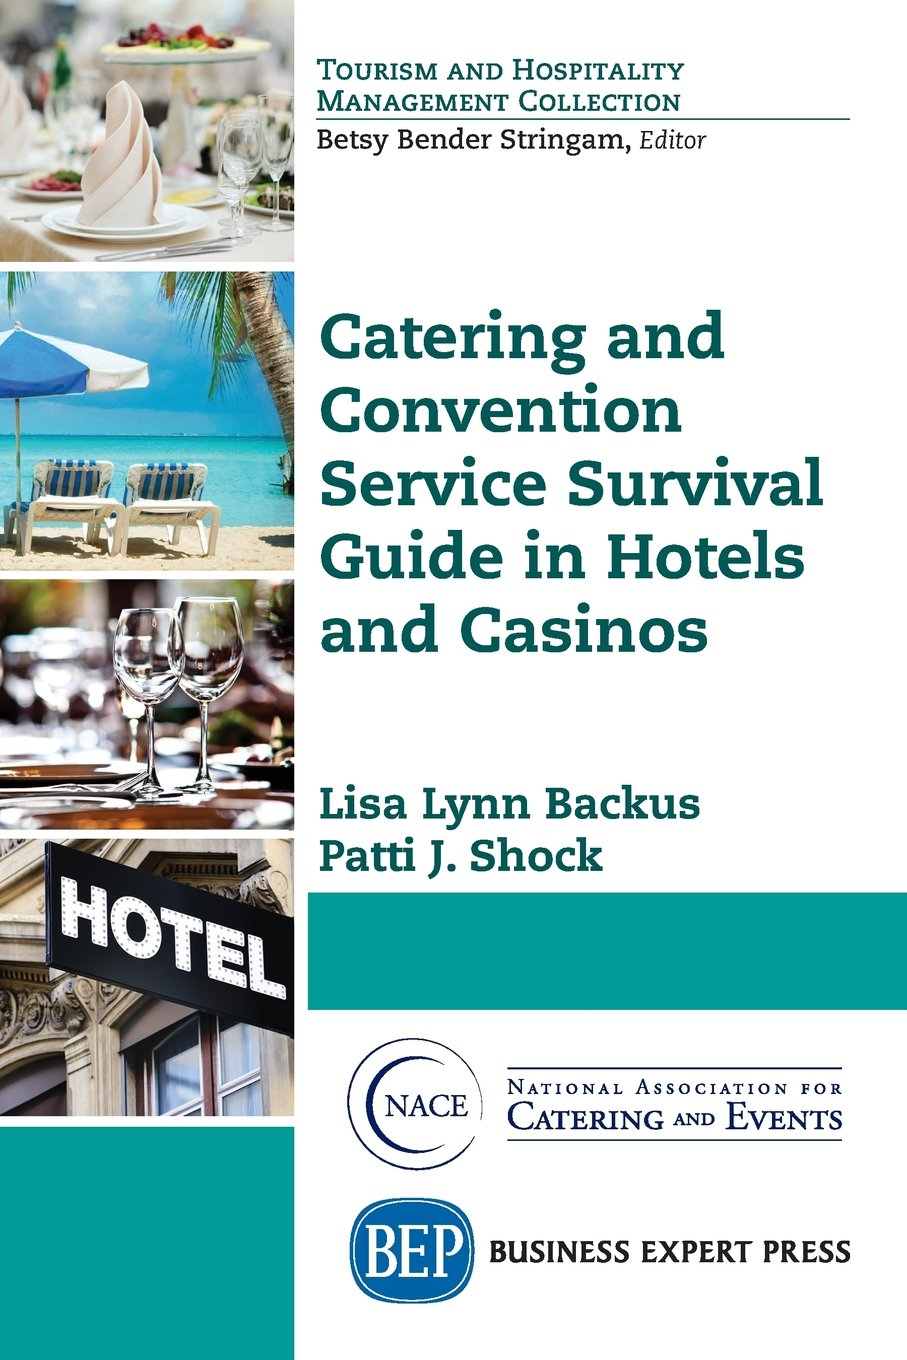 Catering and Convention Service Survival Guide in Hotels and Casinos (Tourism and Hospitality Management Collection)